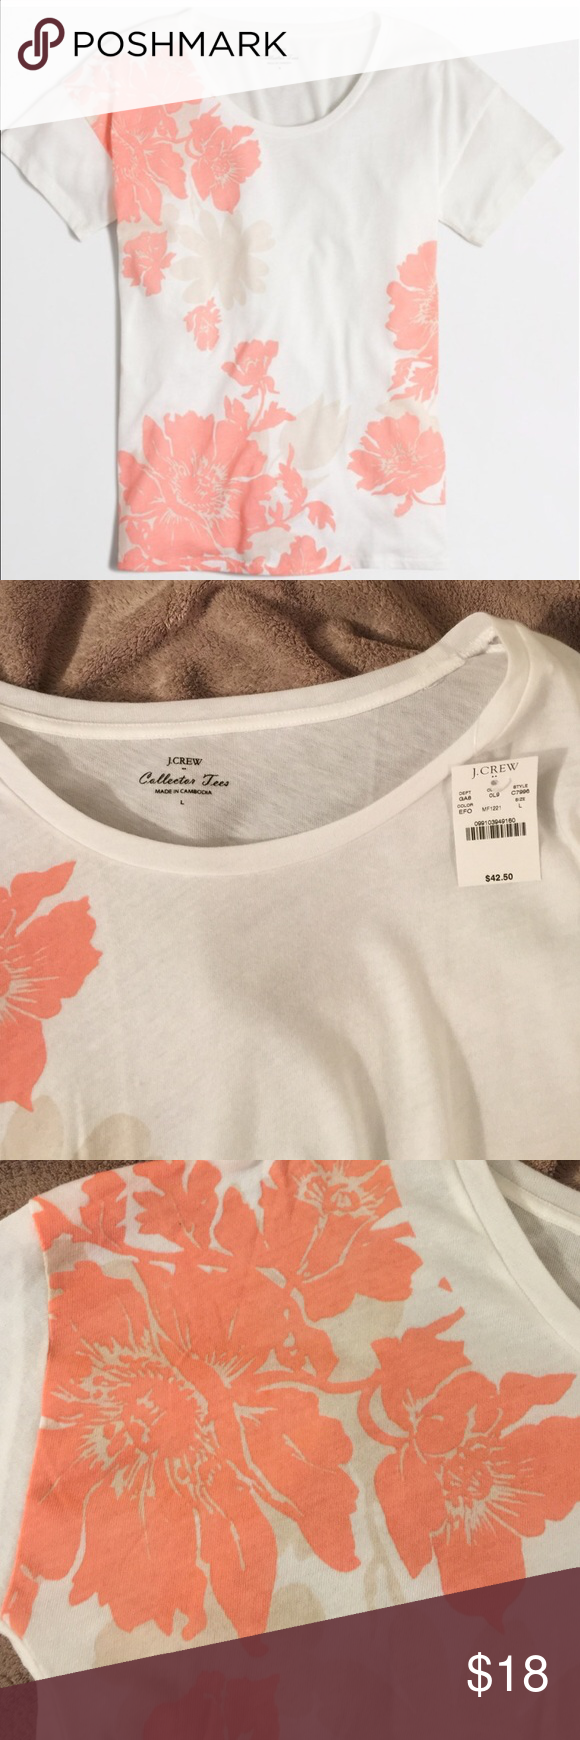 J. Crew Collector Tee NWT. Light weight, 60% cotton and 40% polyester.   Lovely top, just much too large for me. J. Crew Tops Tees - Short Sleeve